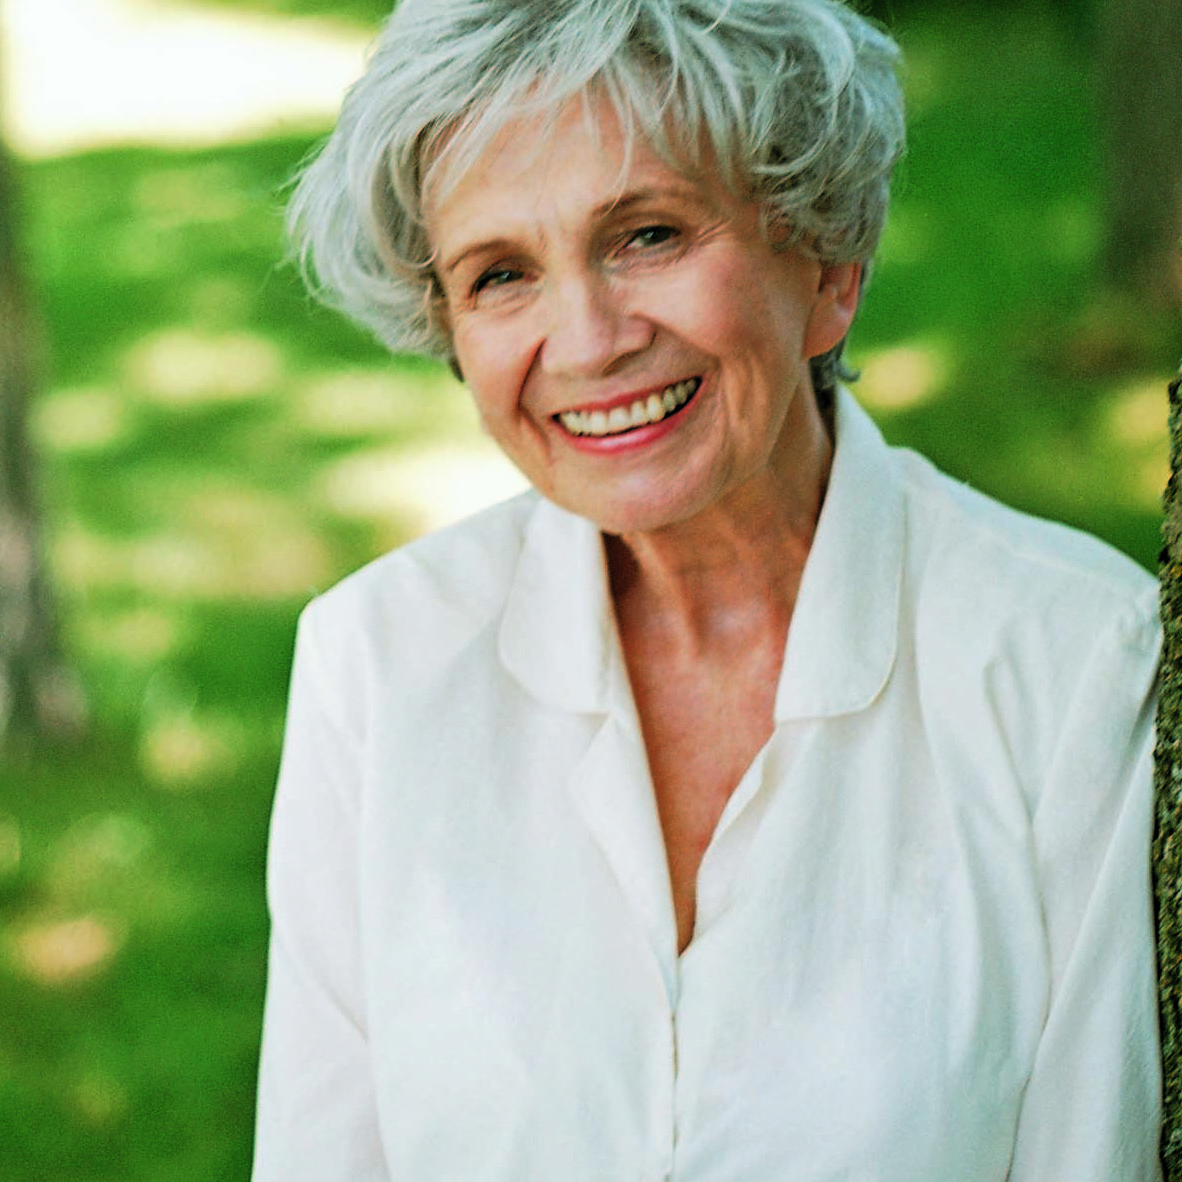 16 short stories by Alice Munro you can read for free right now